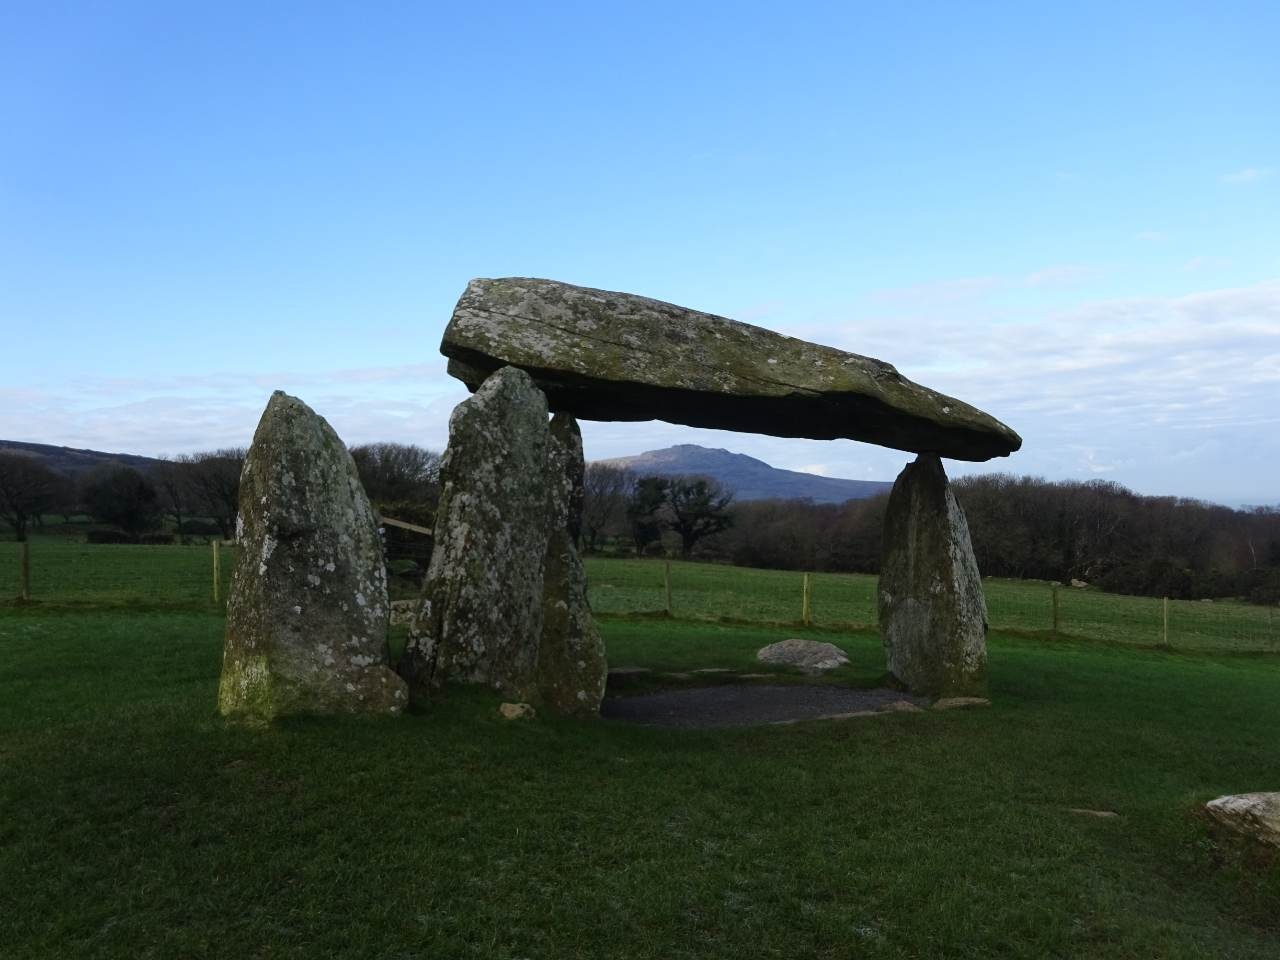 Pentre Ifan burial chamber in Wales